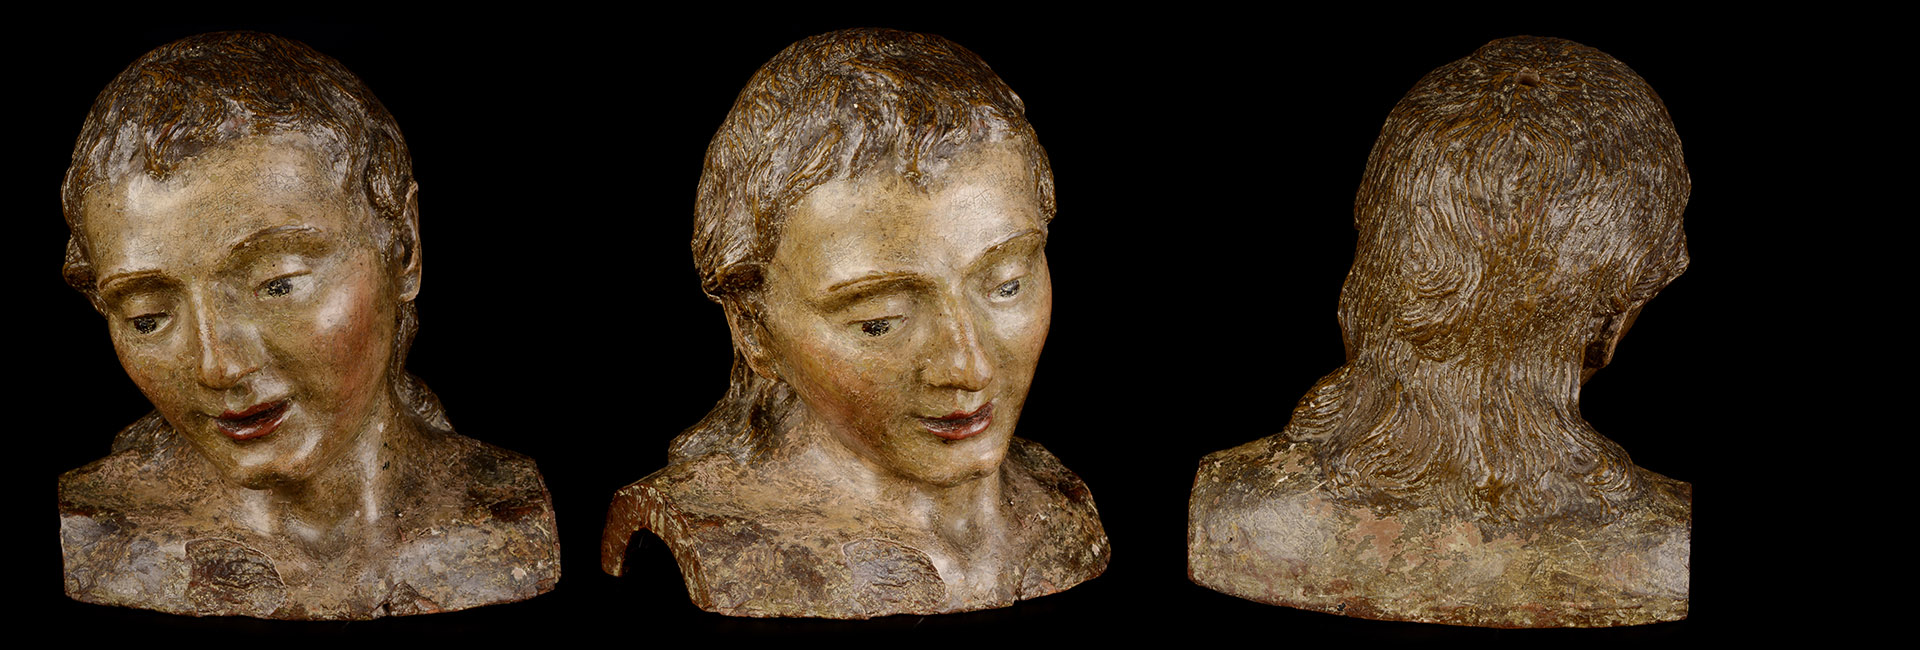 Italy, beginning of the 16th century [Renaissance bust of a young man]